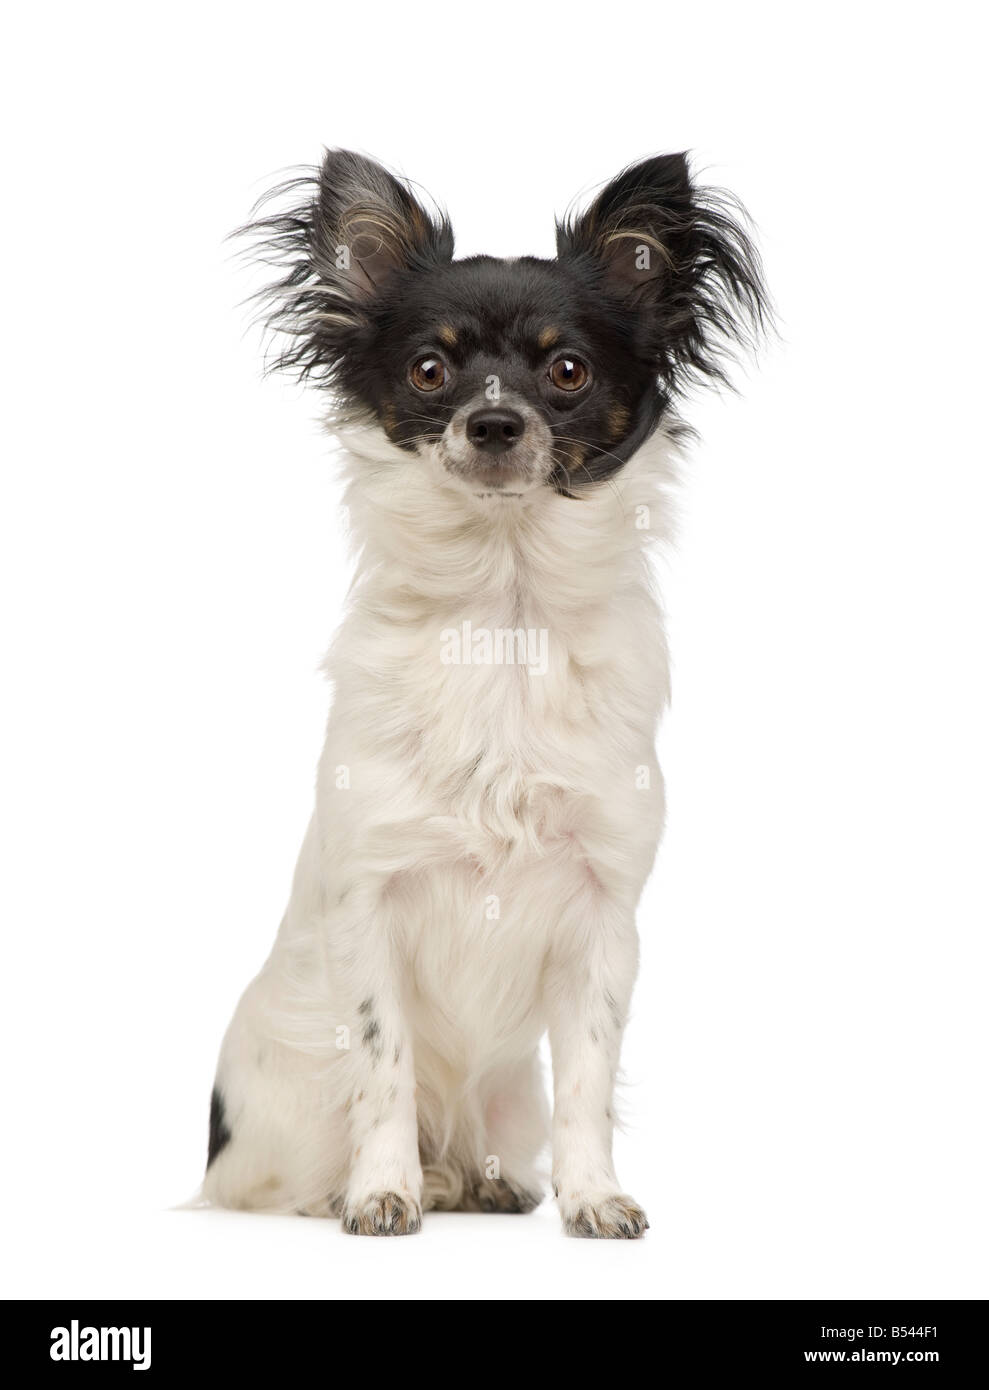 long haired chihuahua 9 months in front of a white background - Stock Image